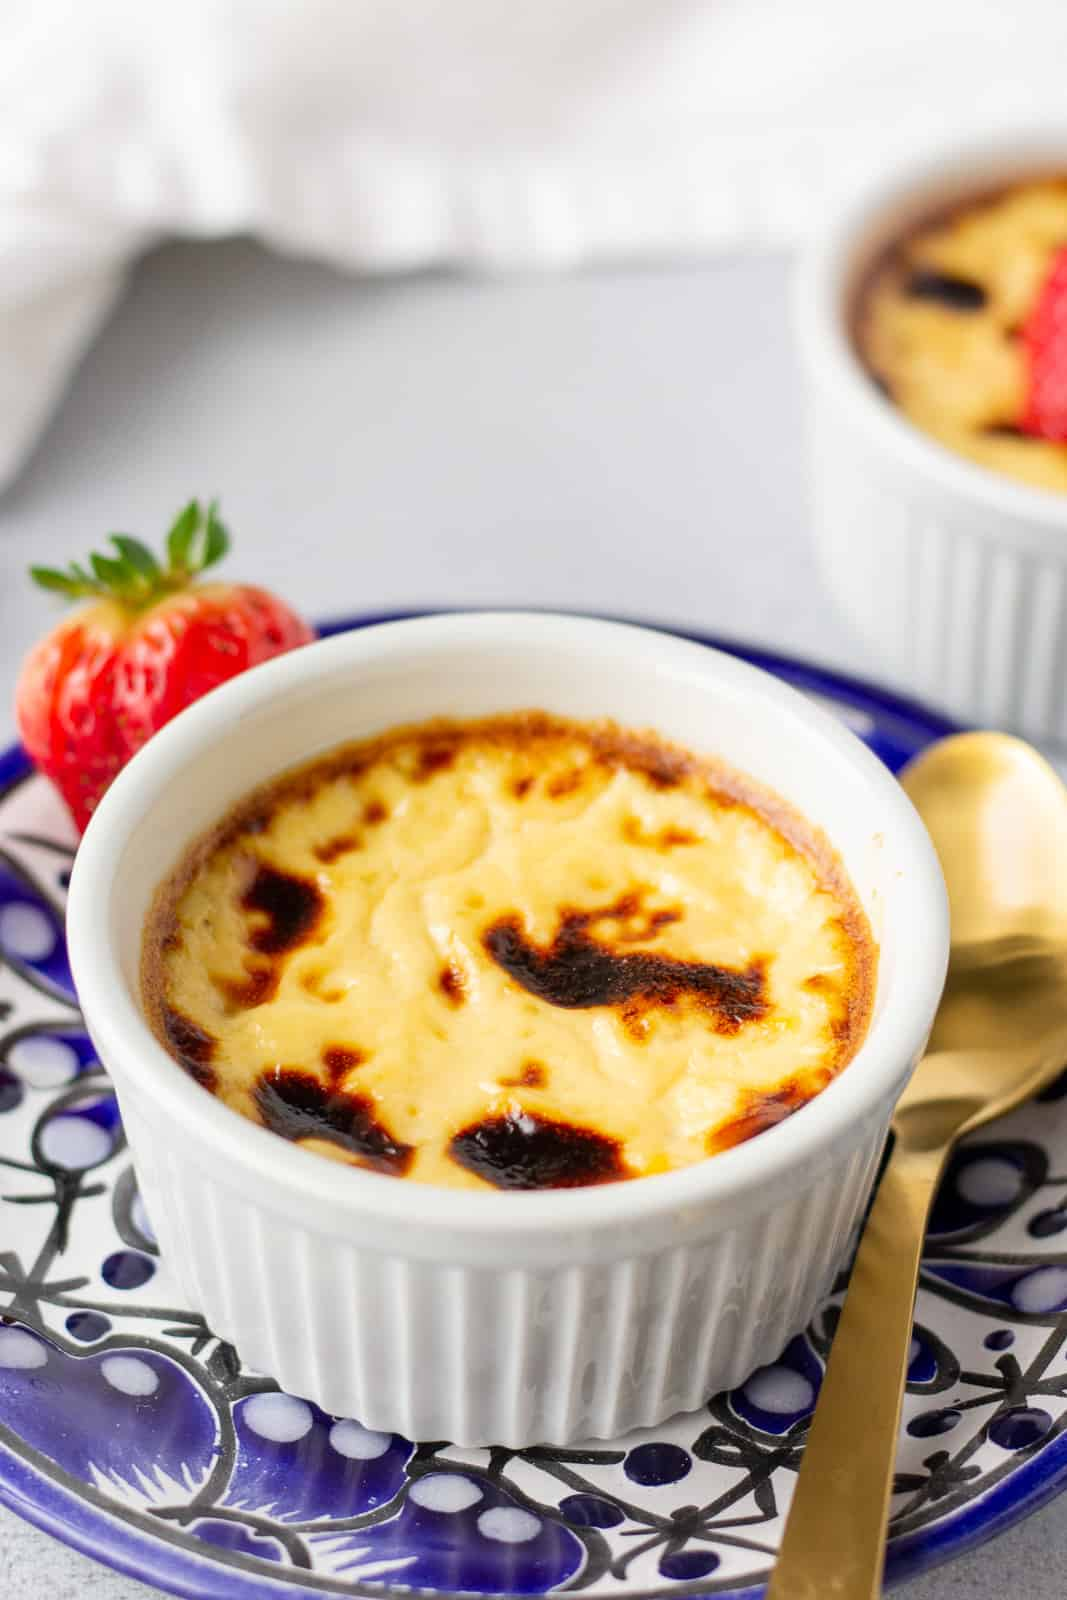 Jericalla in a white ramekin on a blue plate with a gold spoon on the side.